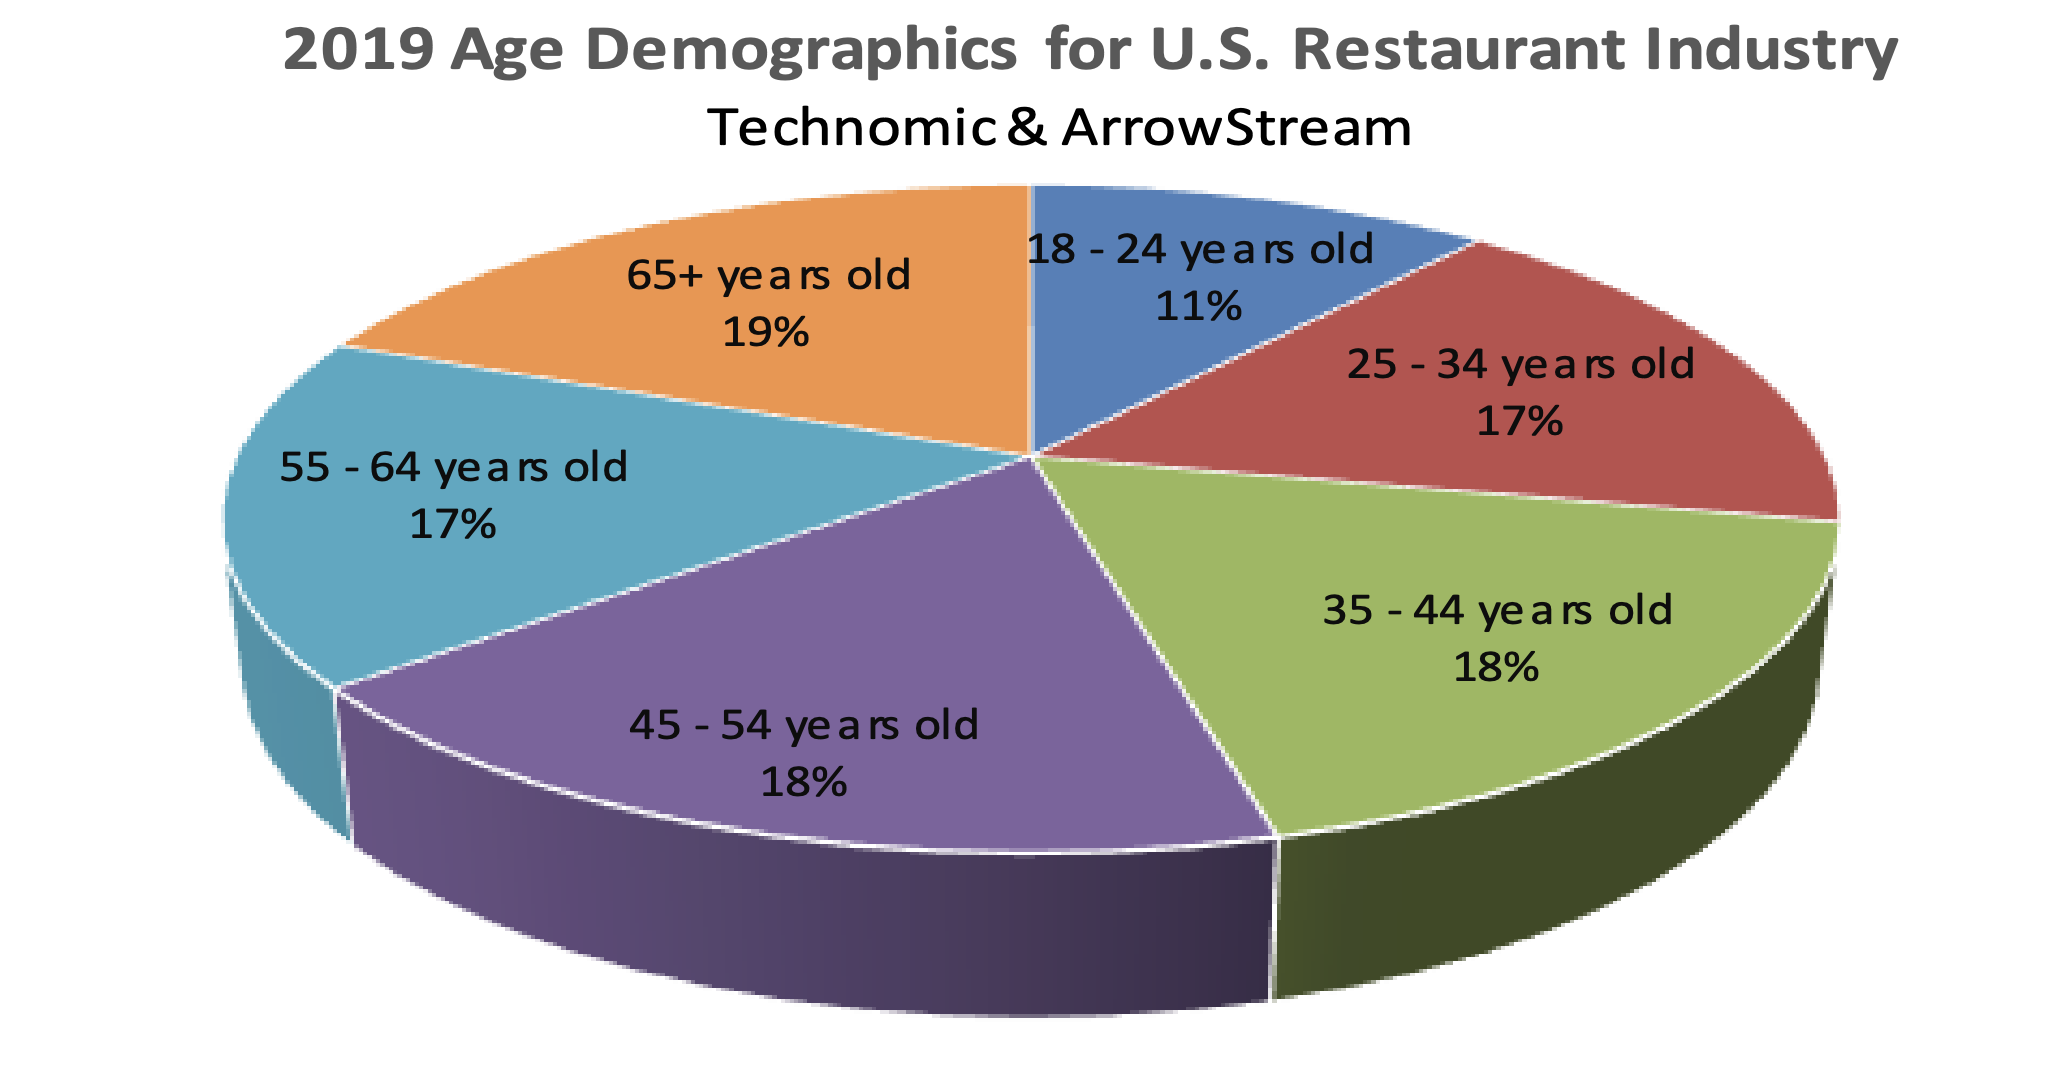 2019 Age Demographics for US Restaurant Industry